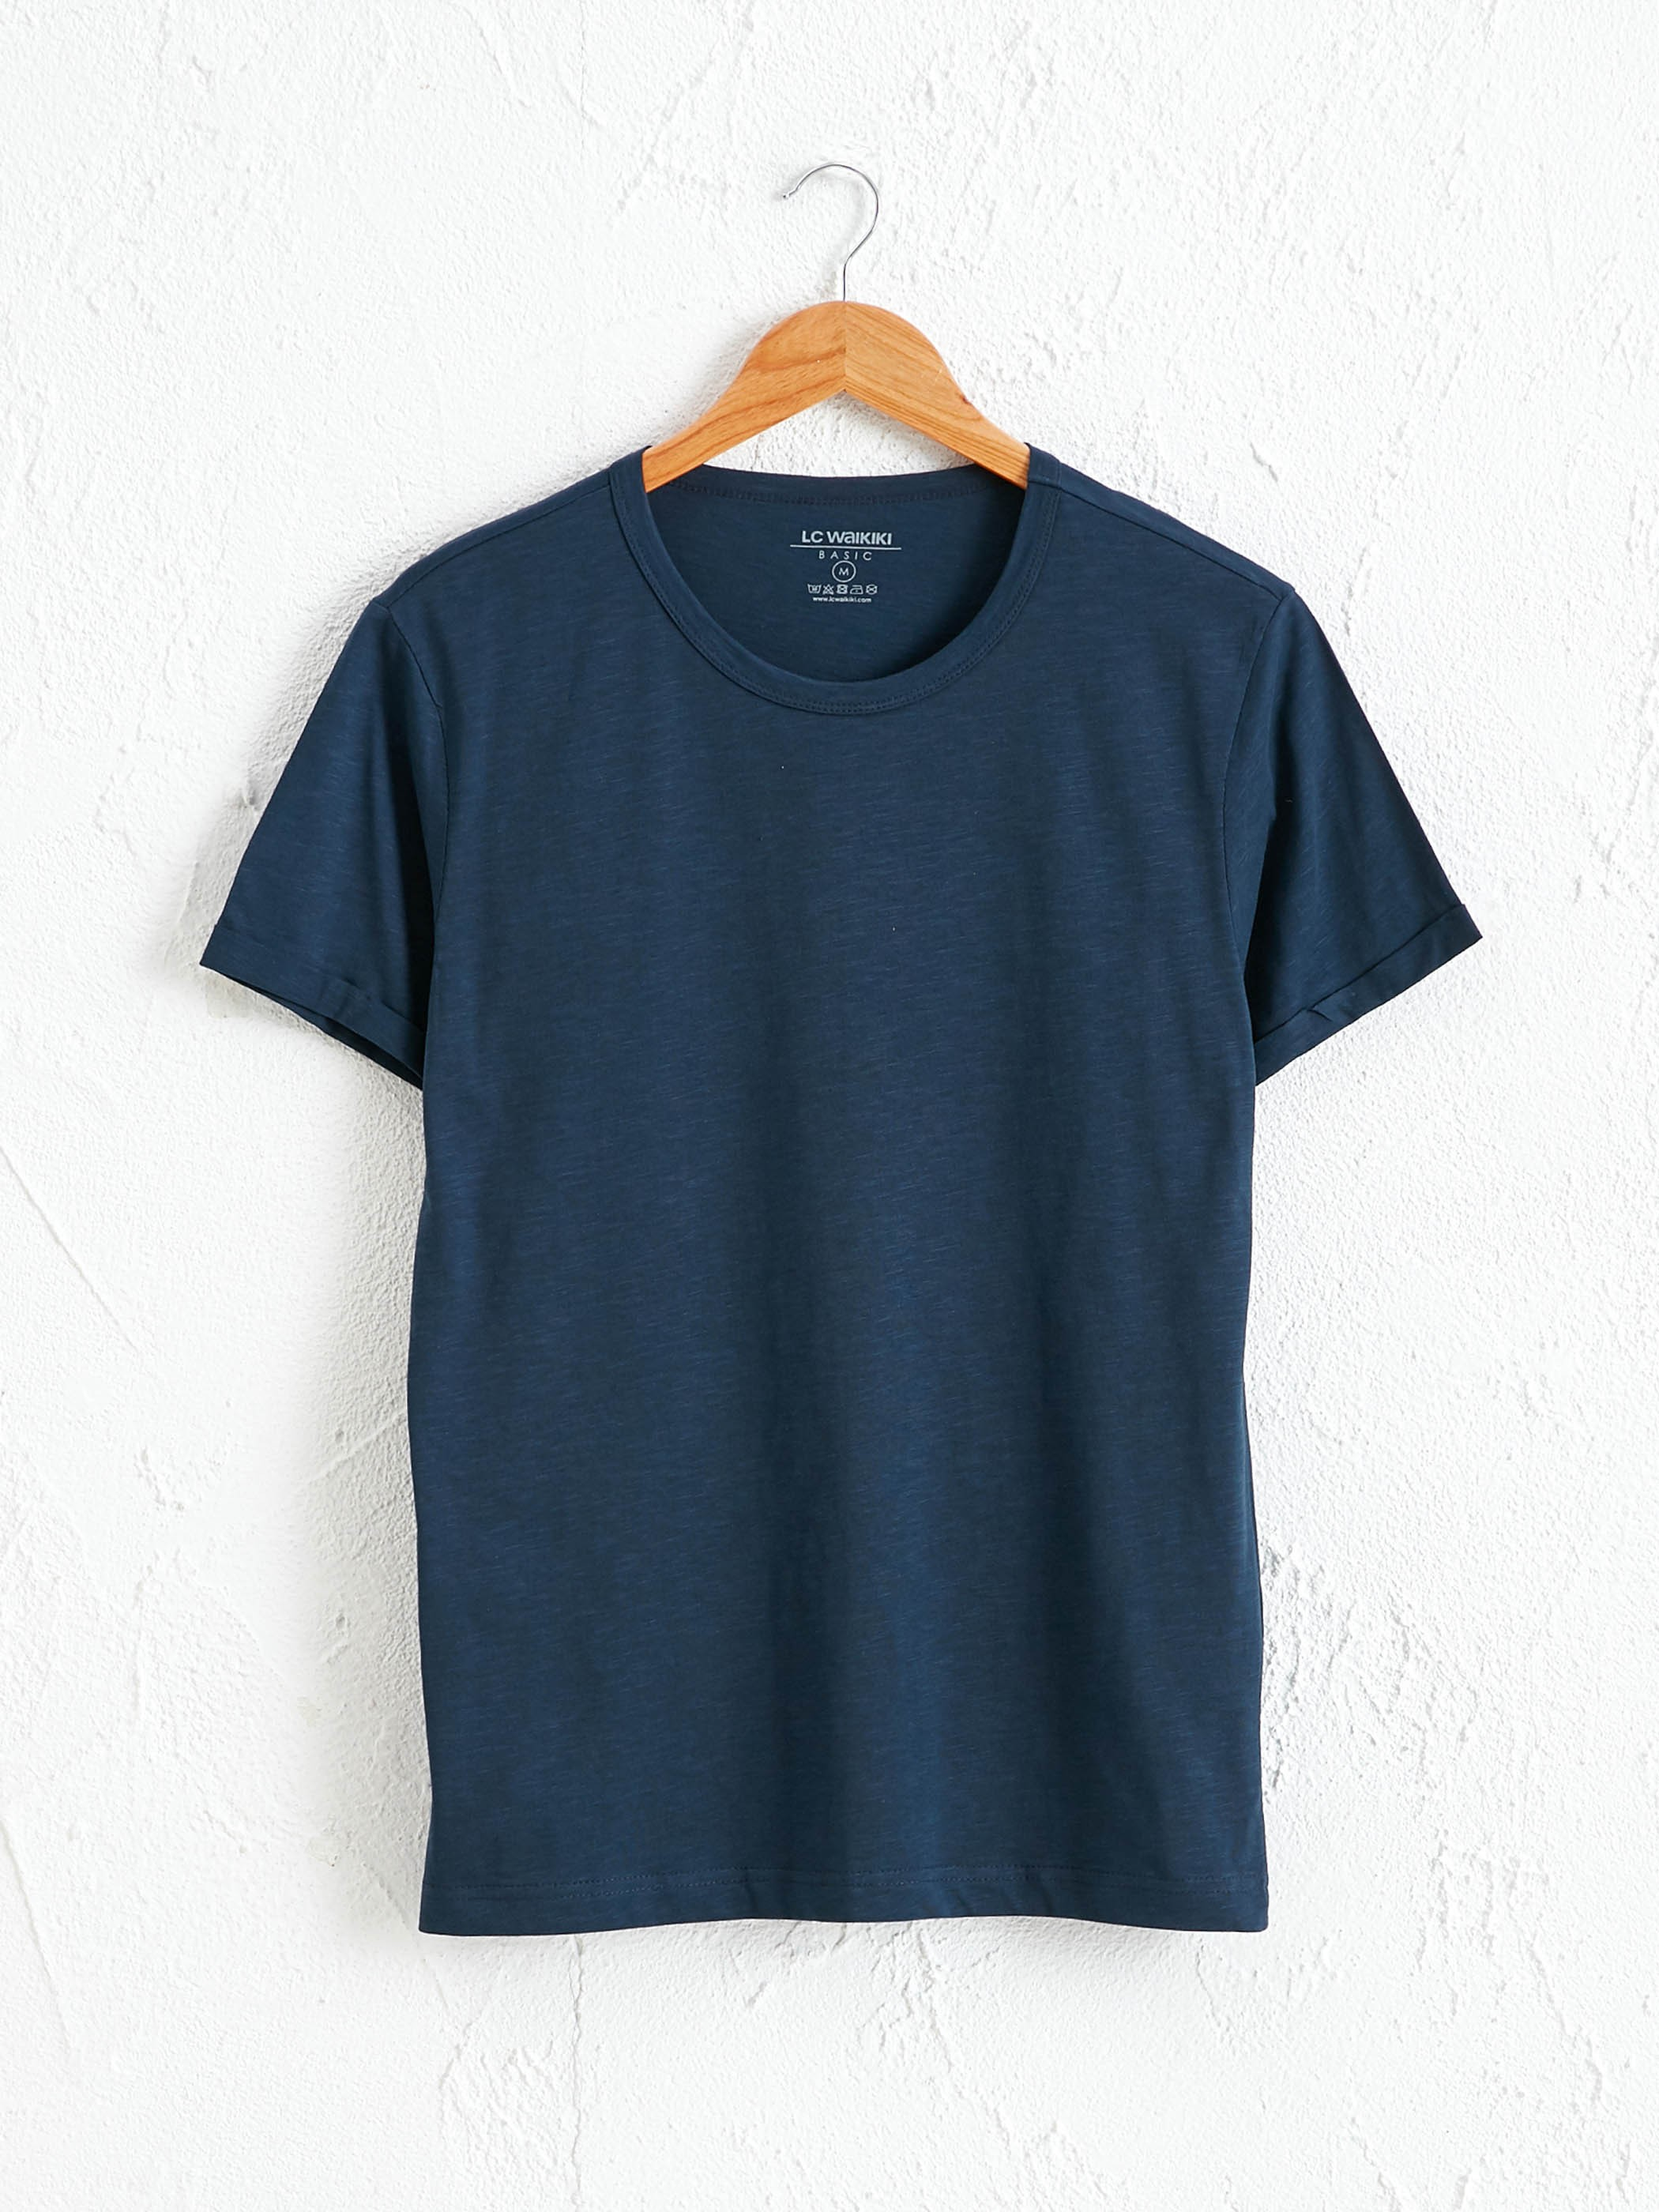 NAVY - Crew Neck Basic Combed Cotton T-Shirt - S11190Z8